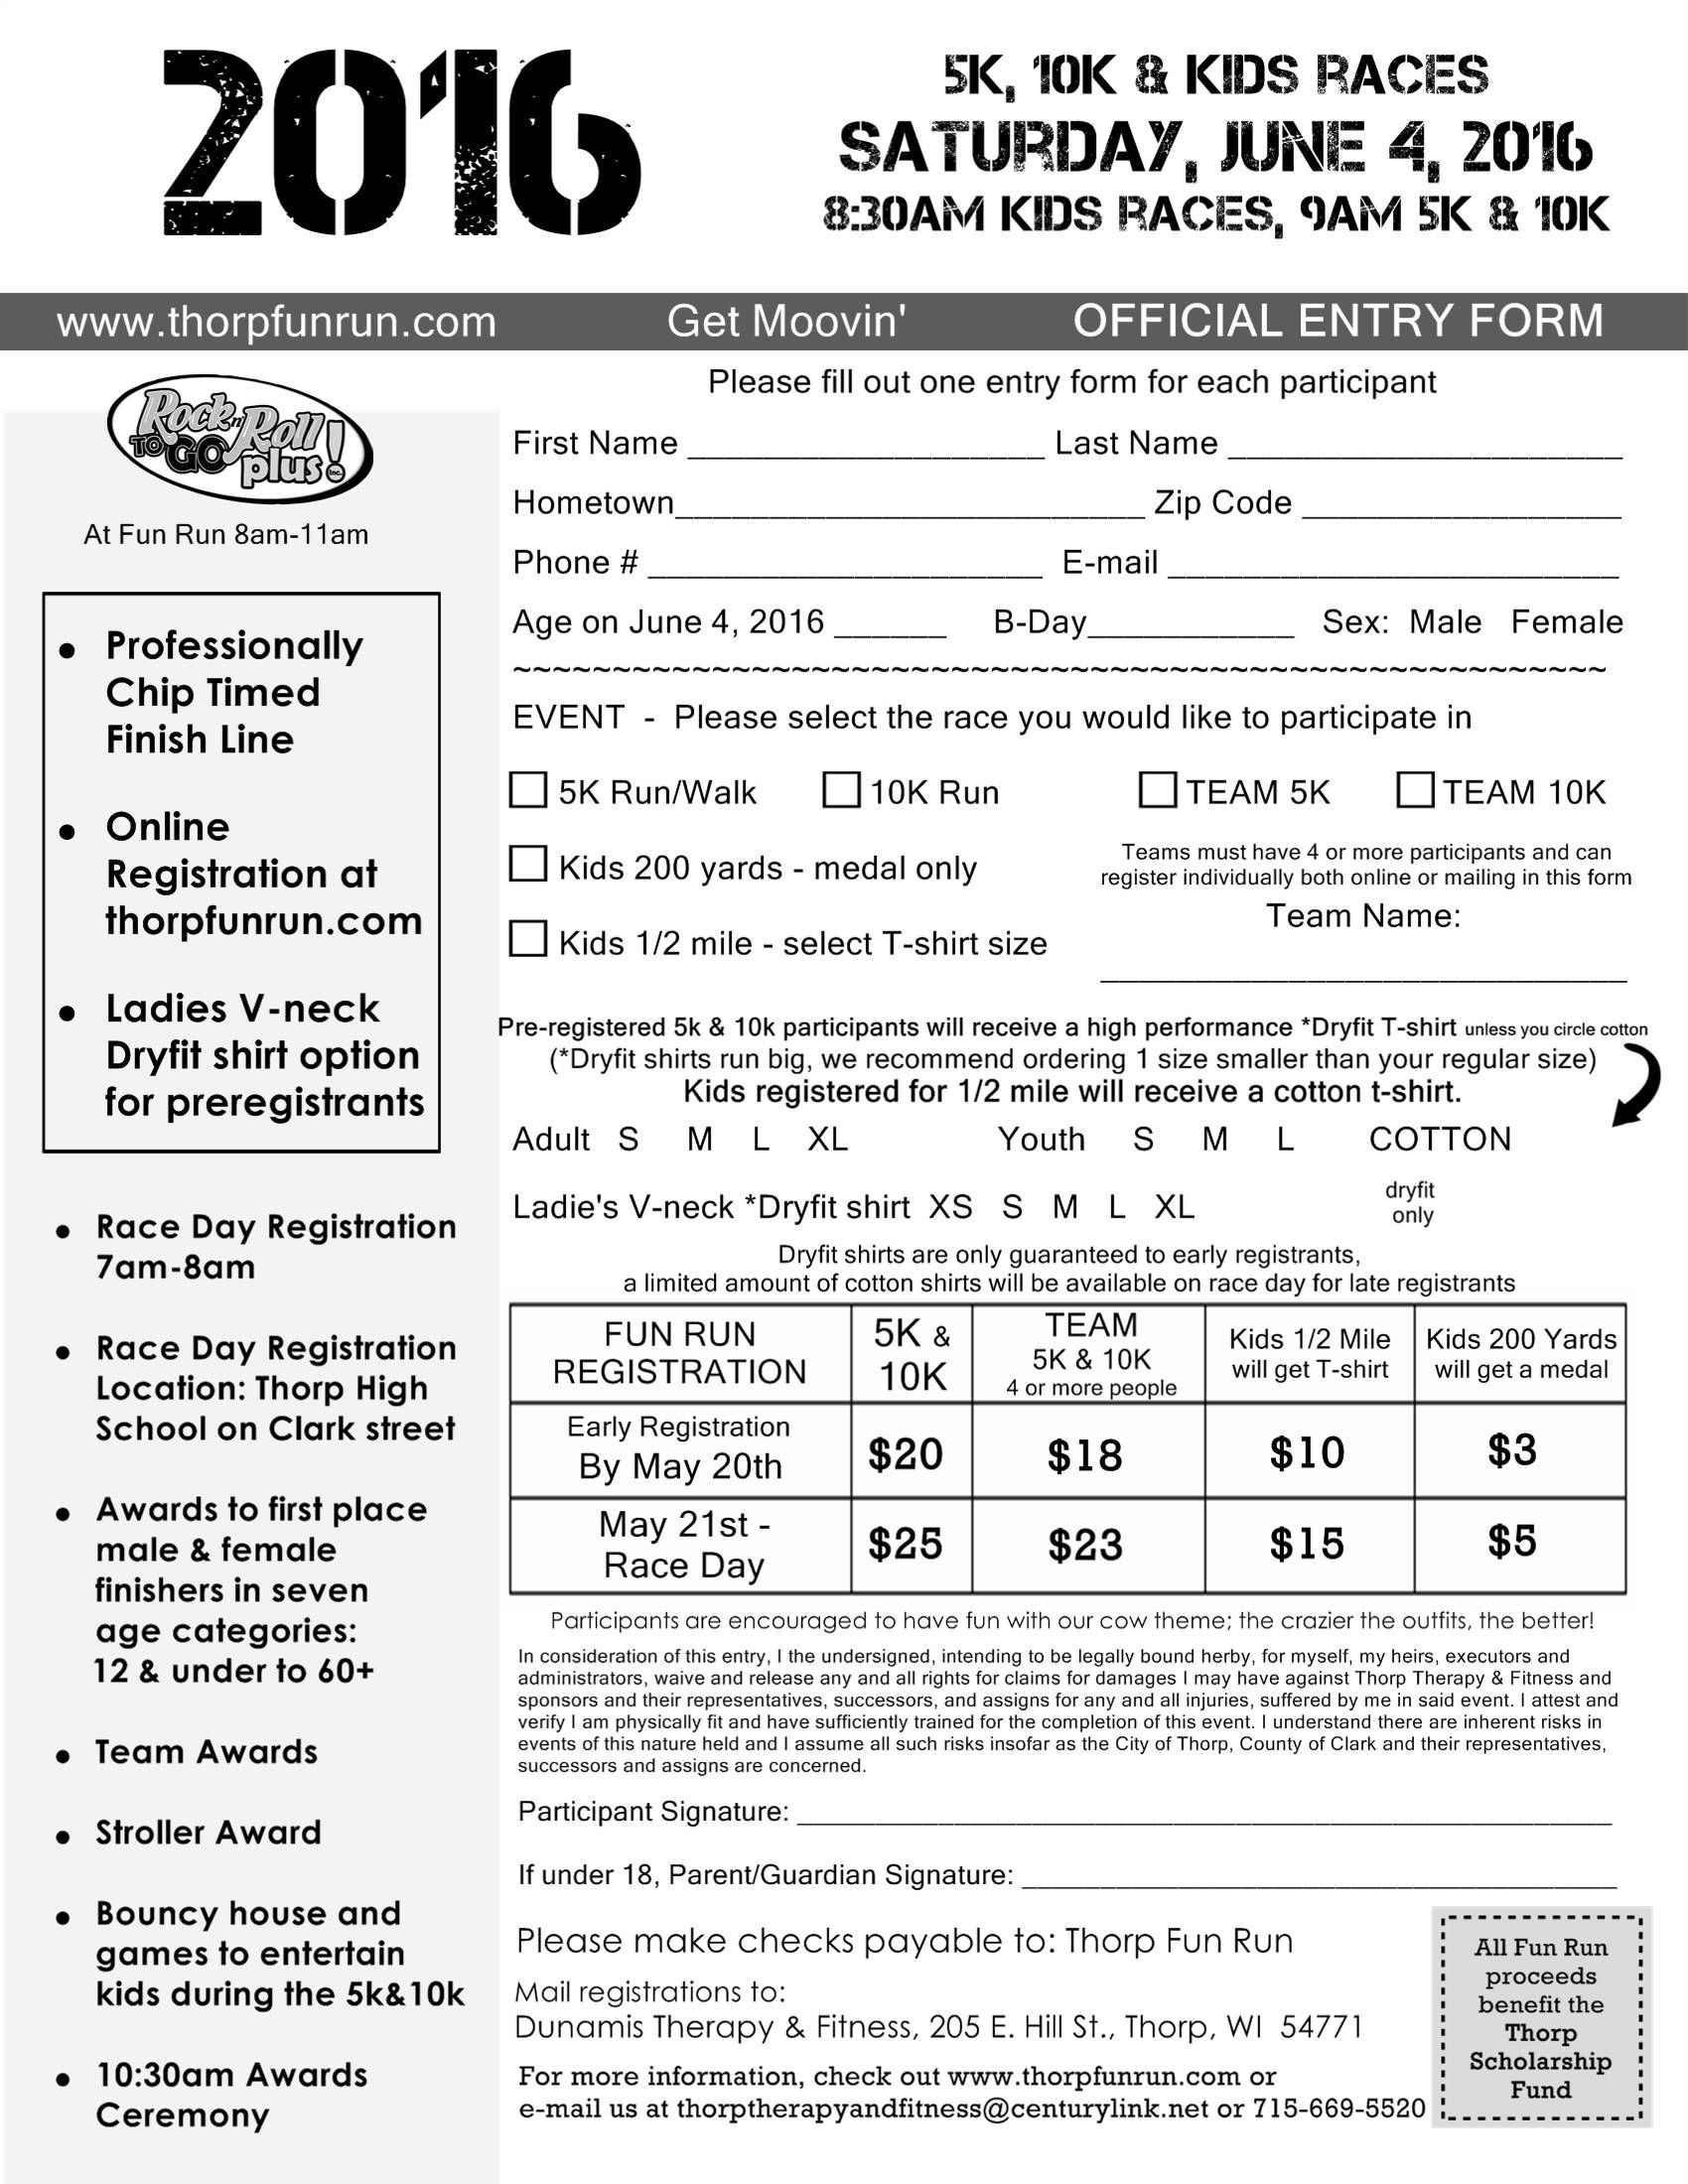 5k registration forms Image result for 5k registration form | Band mom | Pinterest ...